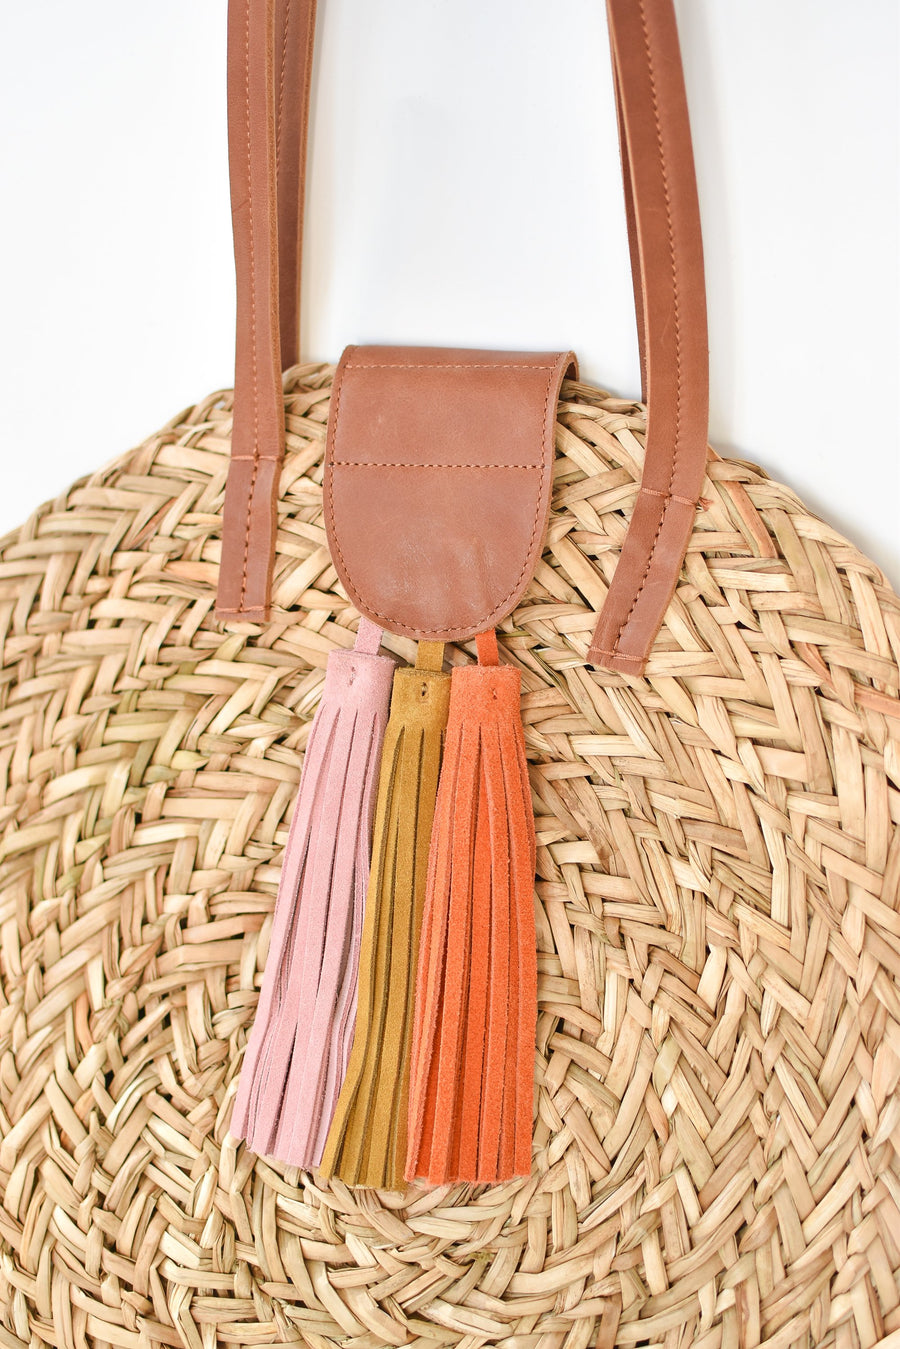 Close up of natural seagrass round straw bag with leather handles and suede tassel closure.